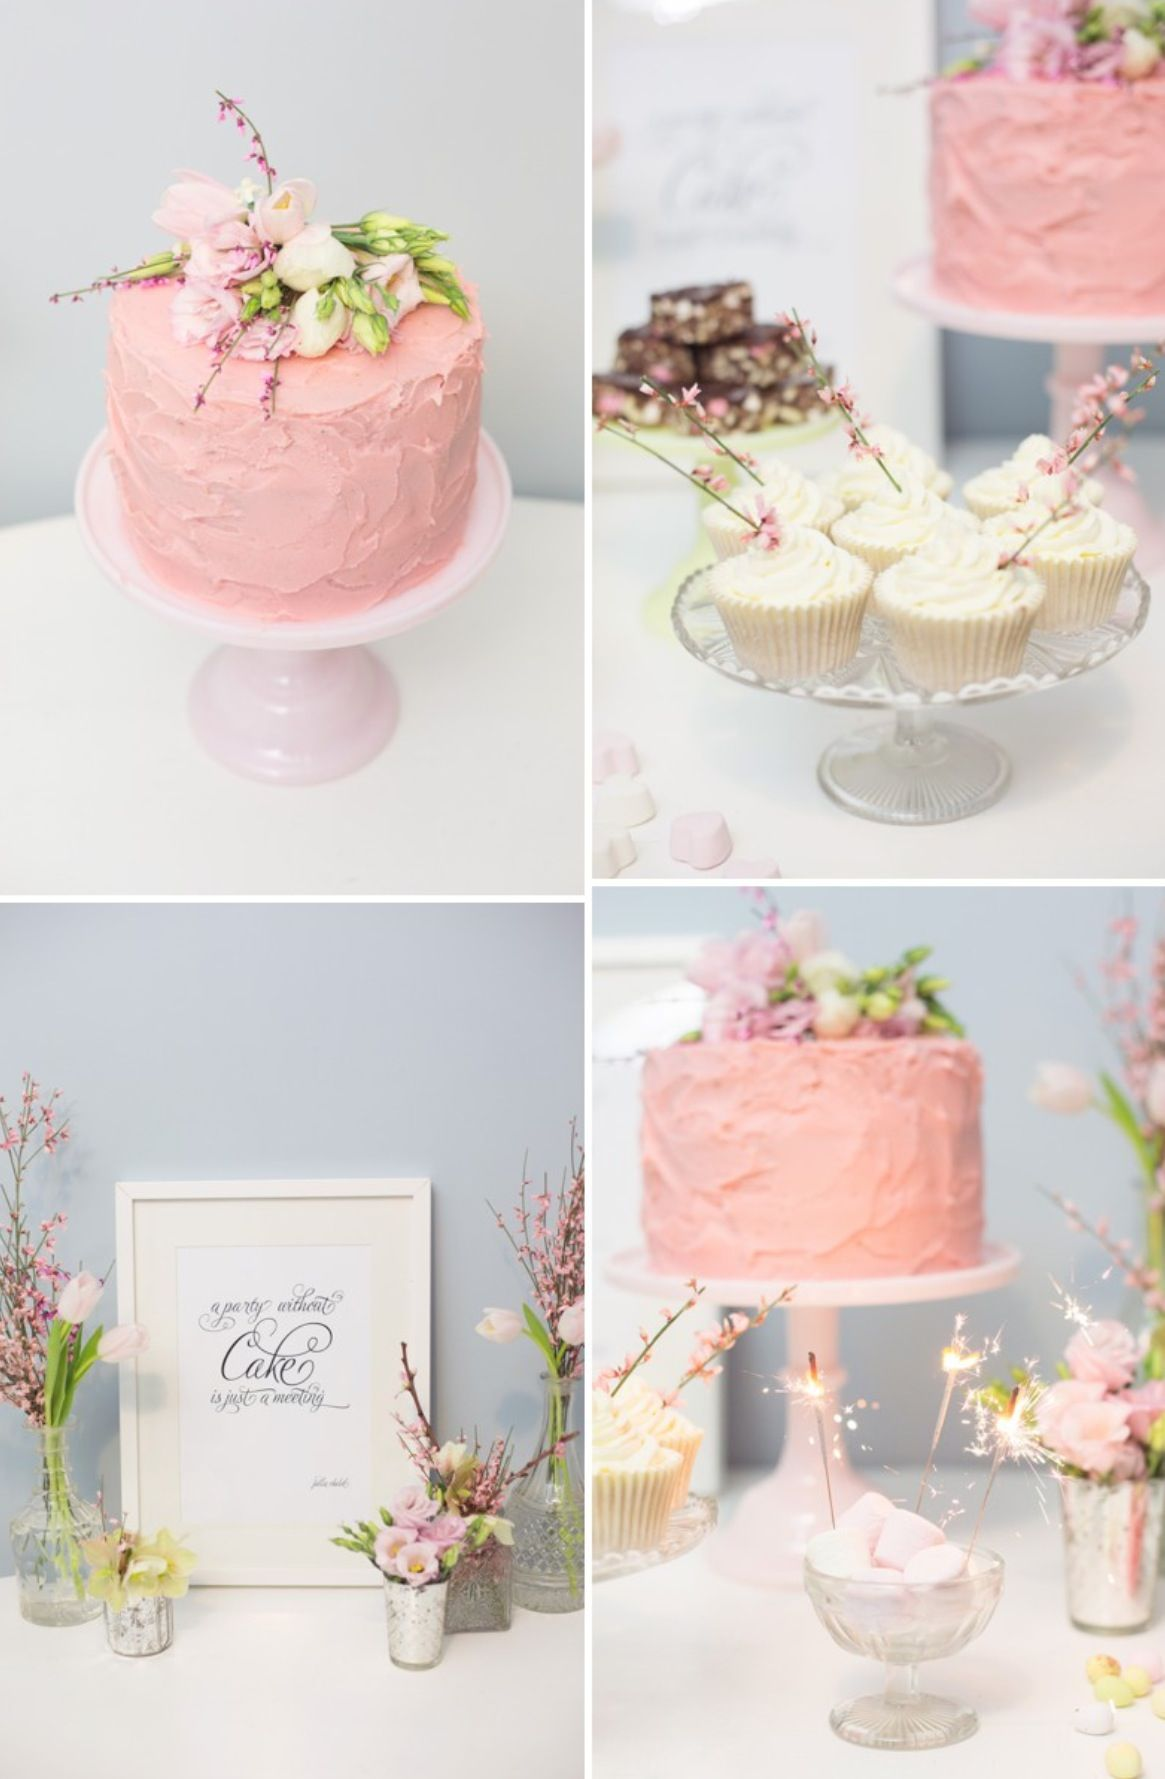 Pink cake and cupcakes | Pretty pink wedding | Pinterest | Cake boss ...